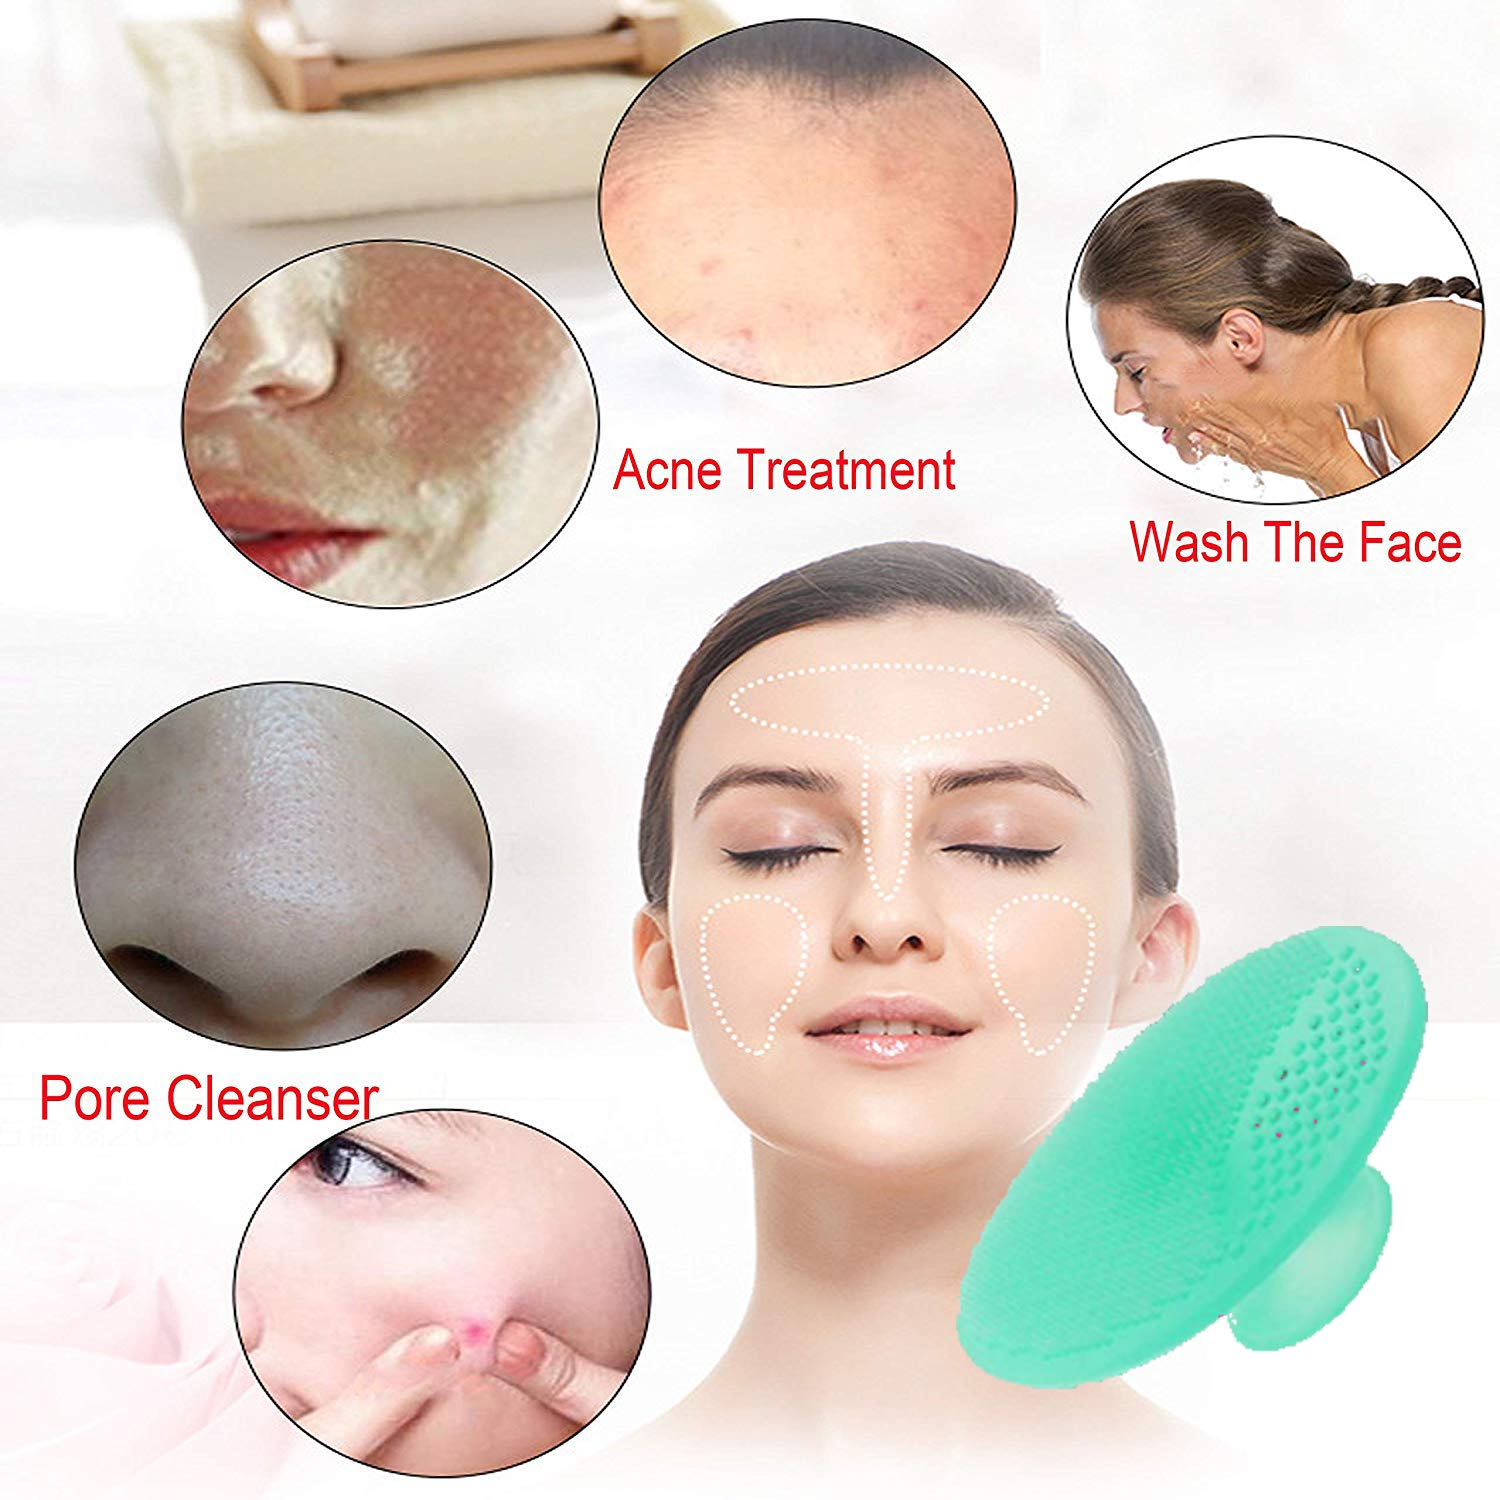 Facial Hair Removal for Women & Painless Peach Fuzz Nose Hair Trimmer Shaver Razor - 2 In 1 Electric Waterproof Hair Removal for Chin Cheek Arm Upper Lip Moustach